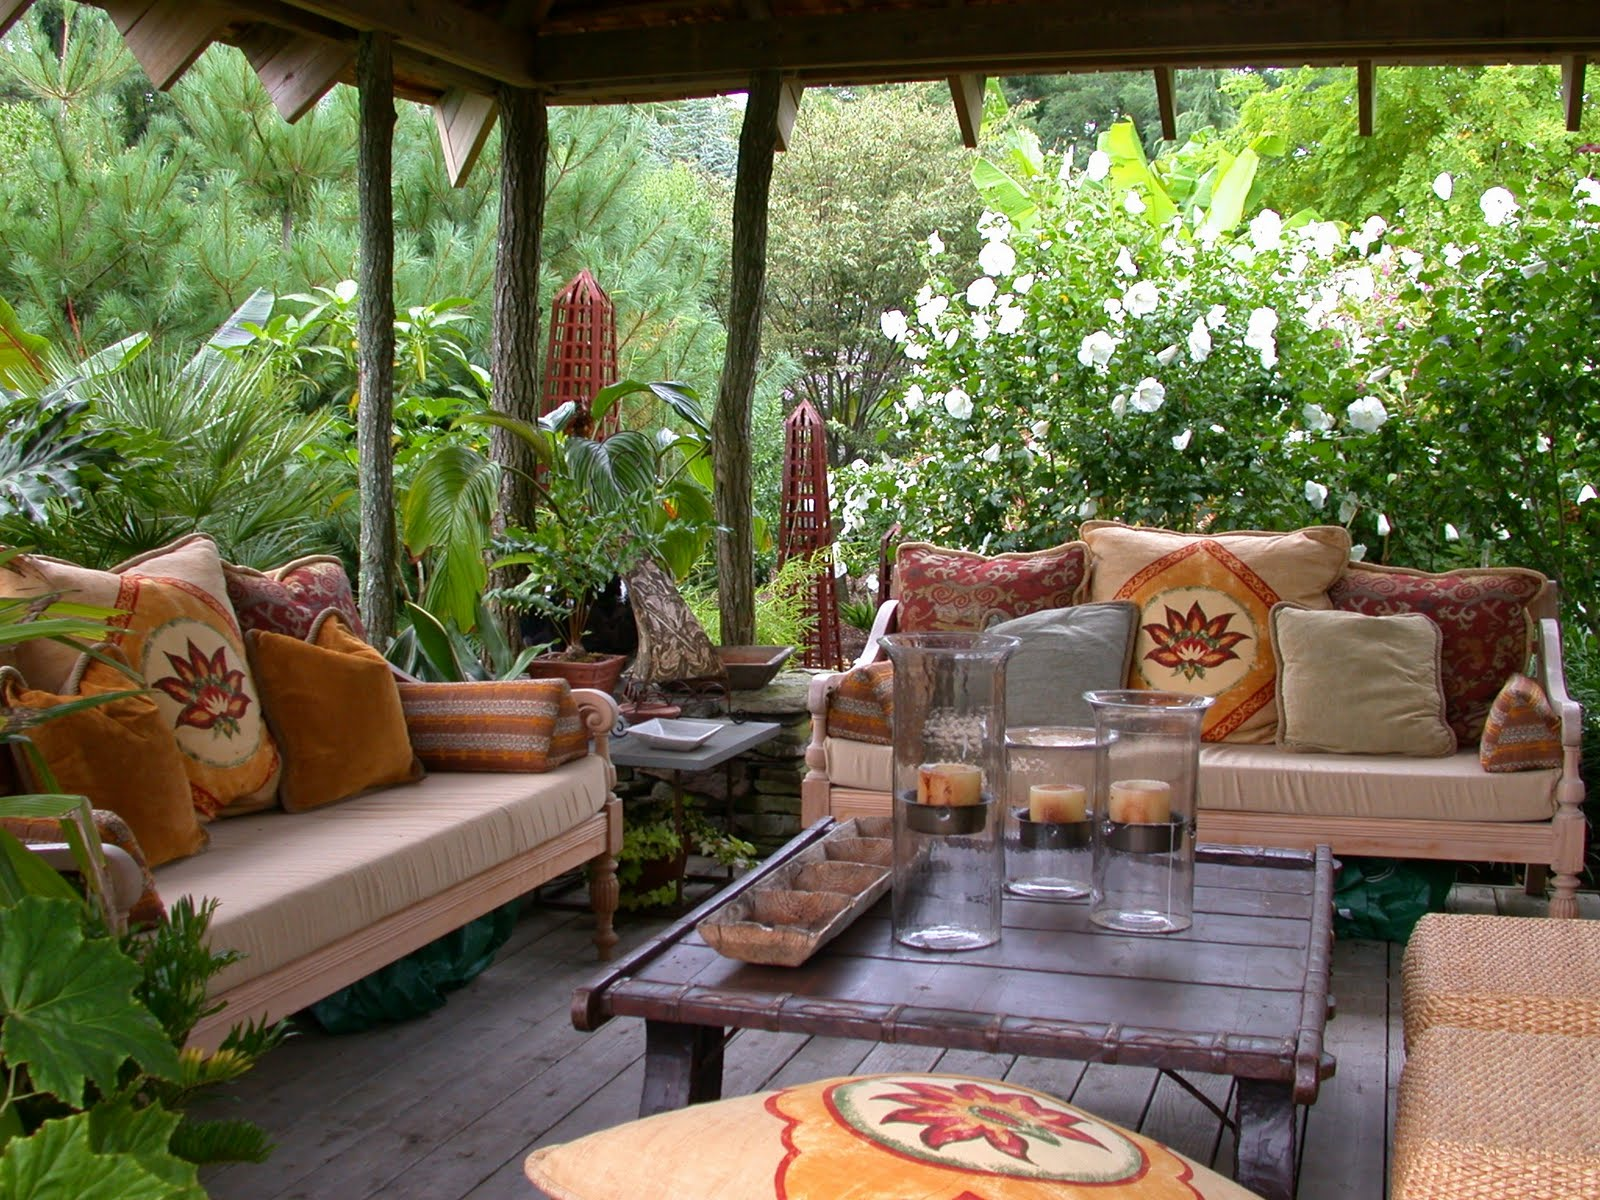 Beautiful Outdoor Spaces Awesome Of Patio Decorating Ideas On a Budget Photo